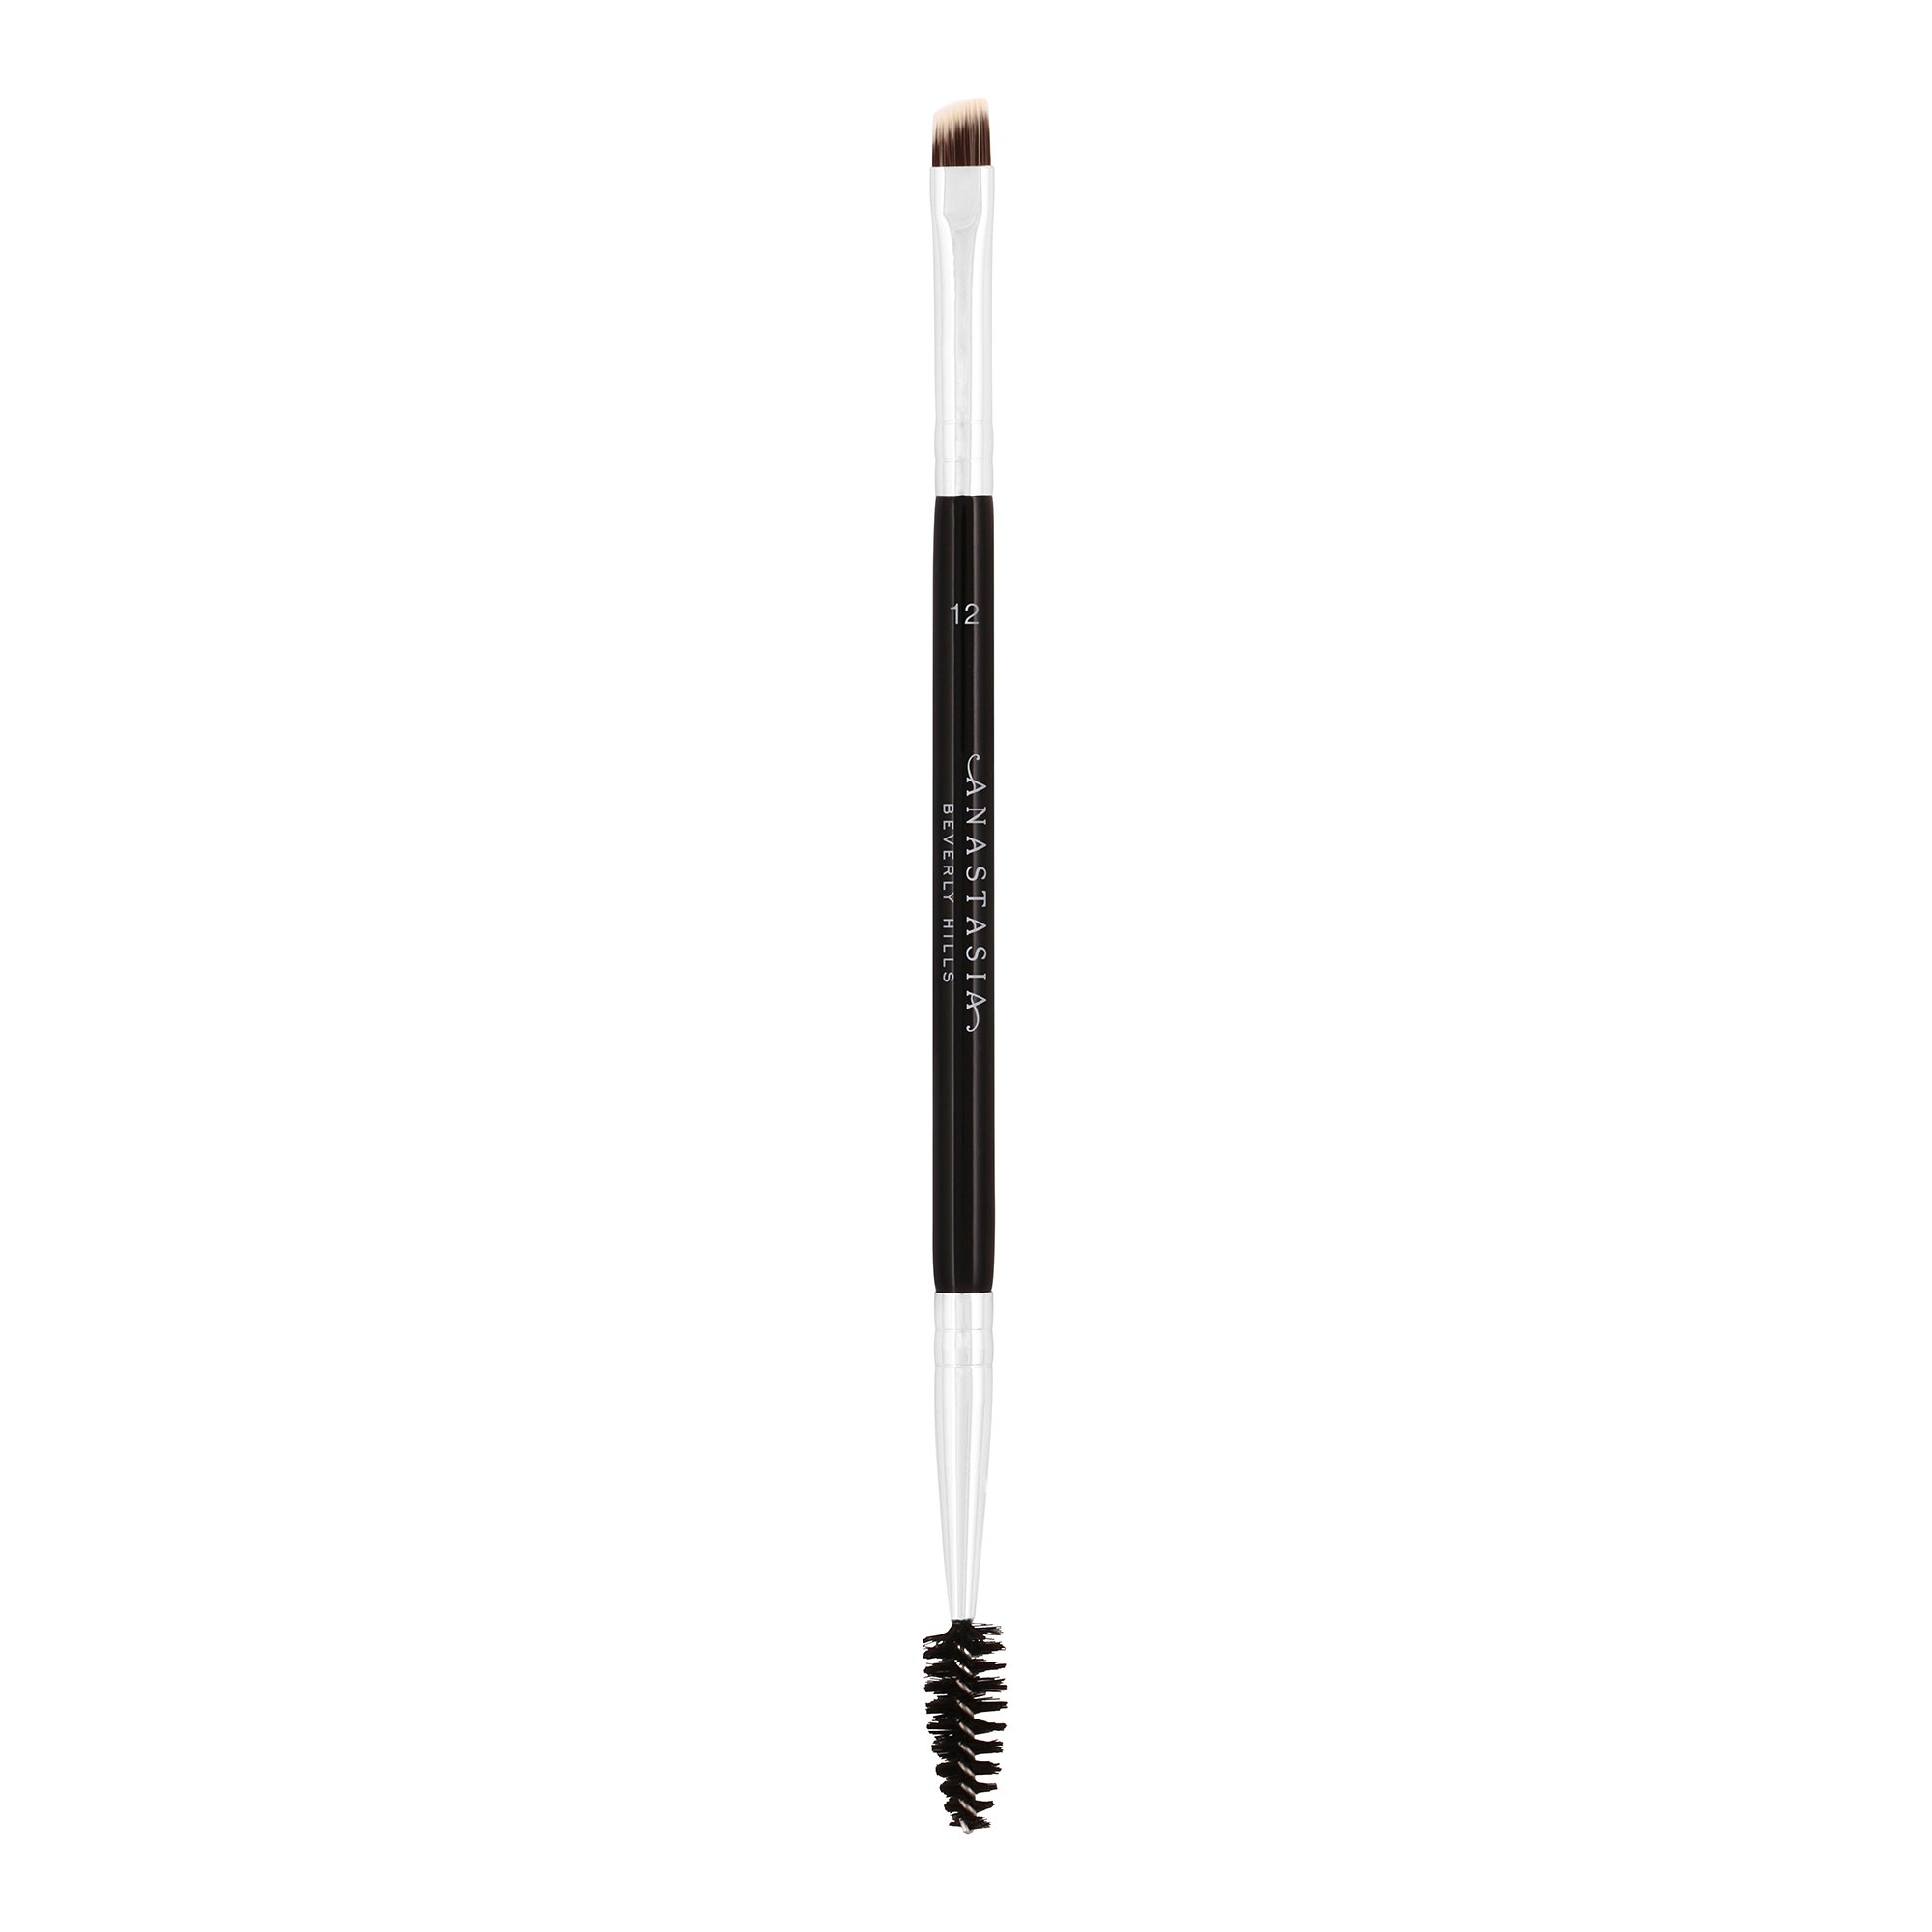 Anastasia Beverly Hills Duo Brush #12. Dual-Ended Firm Angled Eyebrow Brush with Spooley